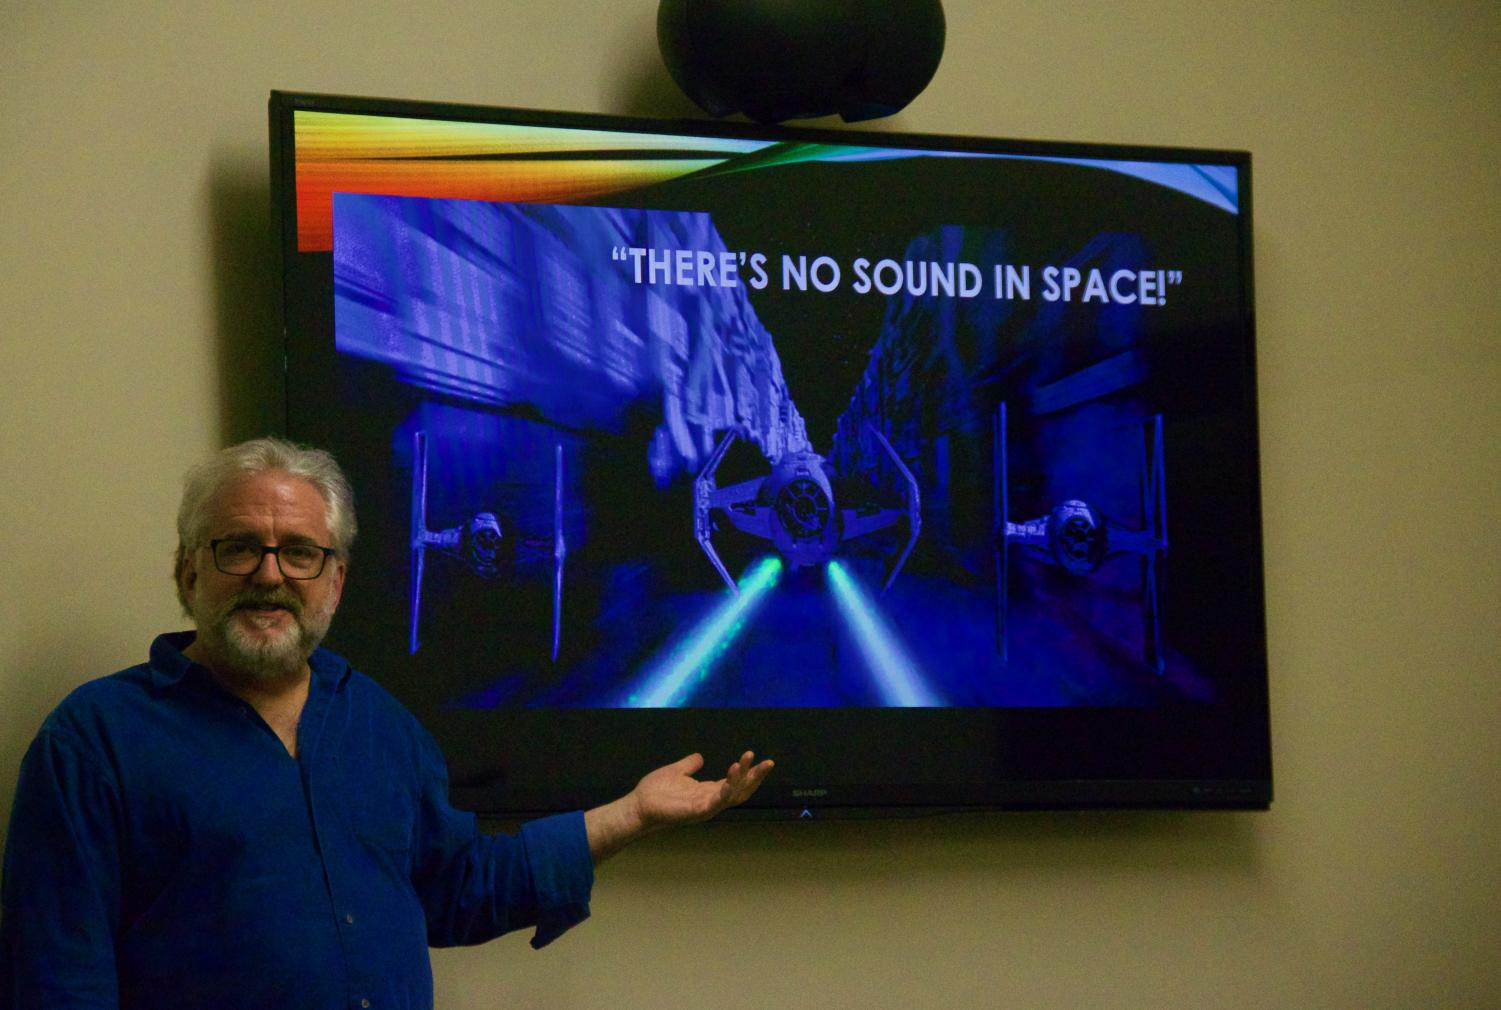 Professor Bryant shared his love of science fiction with the audience at the first SciPops event of the semester. The event took place at Munday Library on Feb 5.